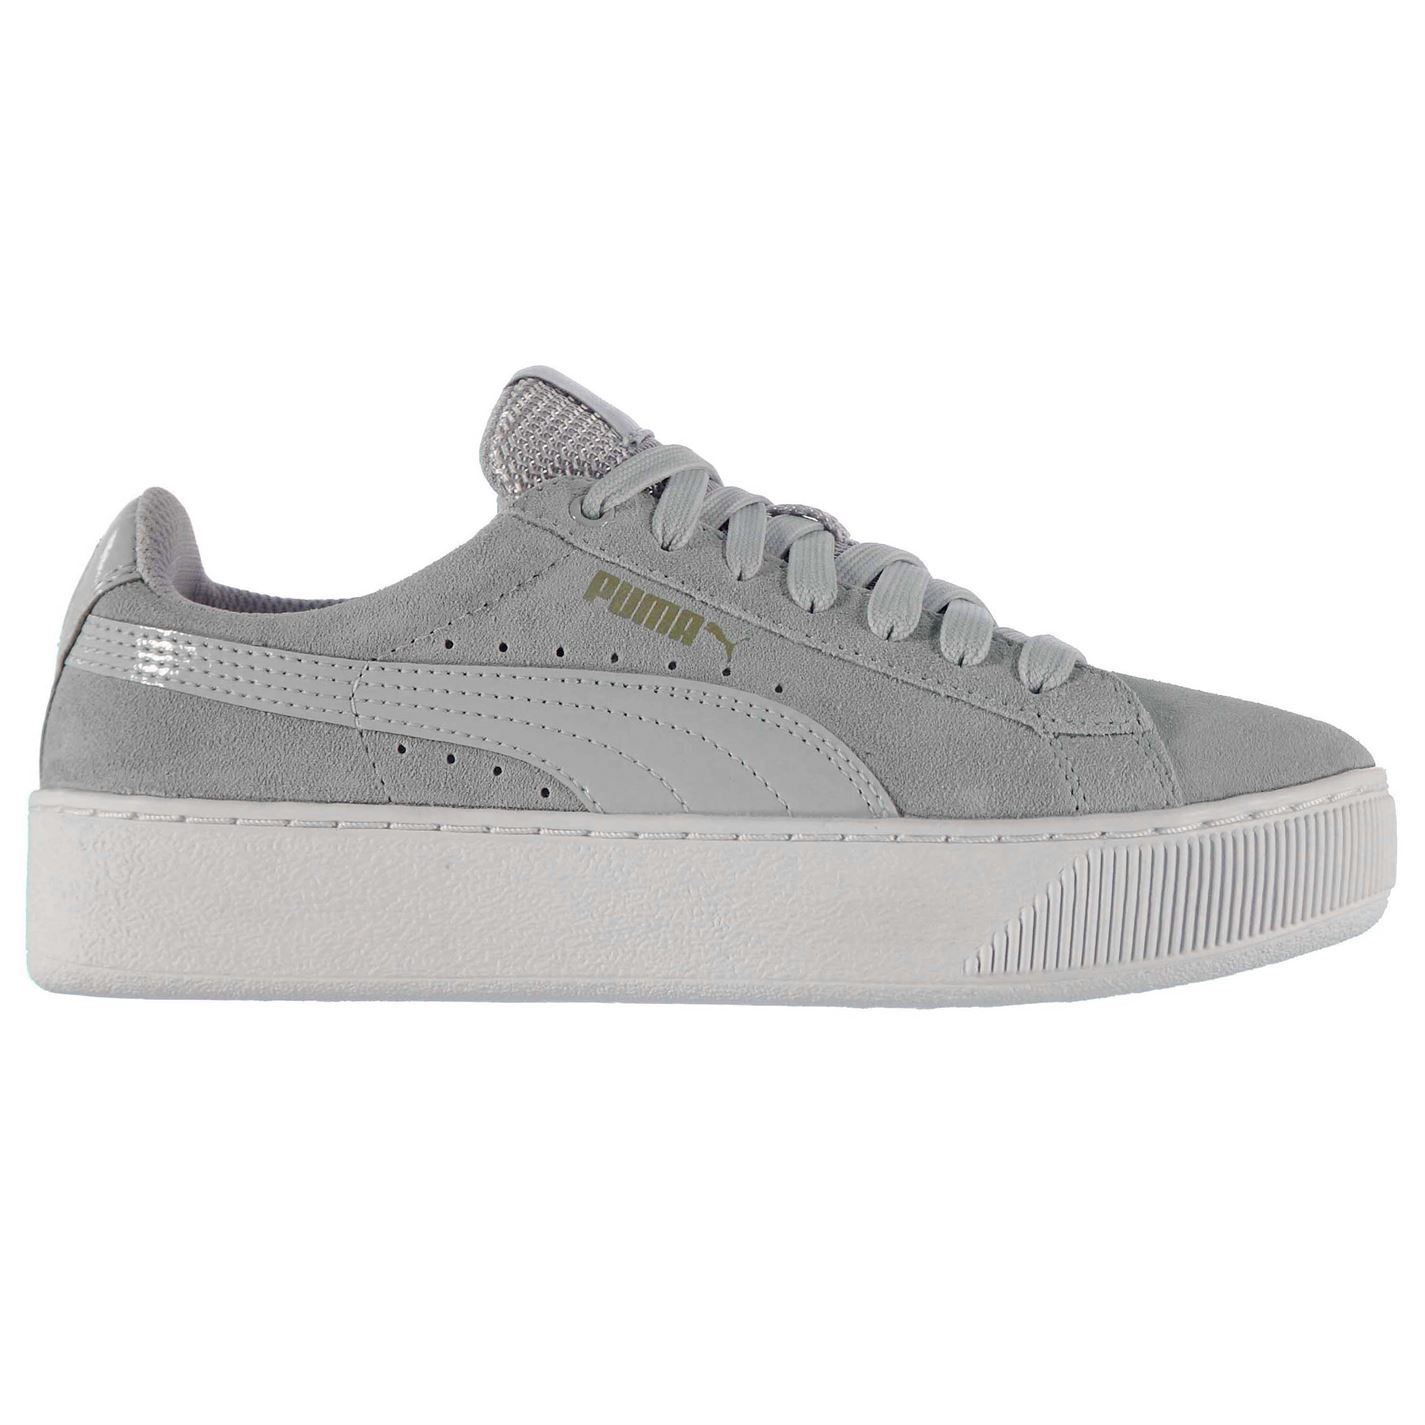 017c6e06ea34 ... Puma Vikky Platform Trainers Womens Grey Violet Casual Sneakers Shoes  Footwear ...